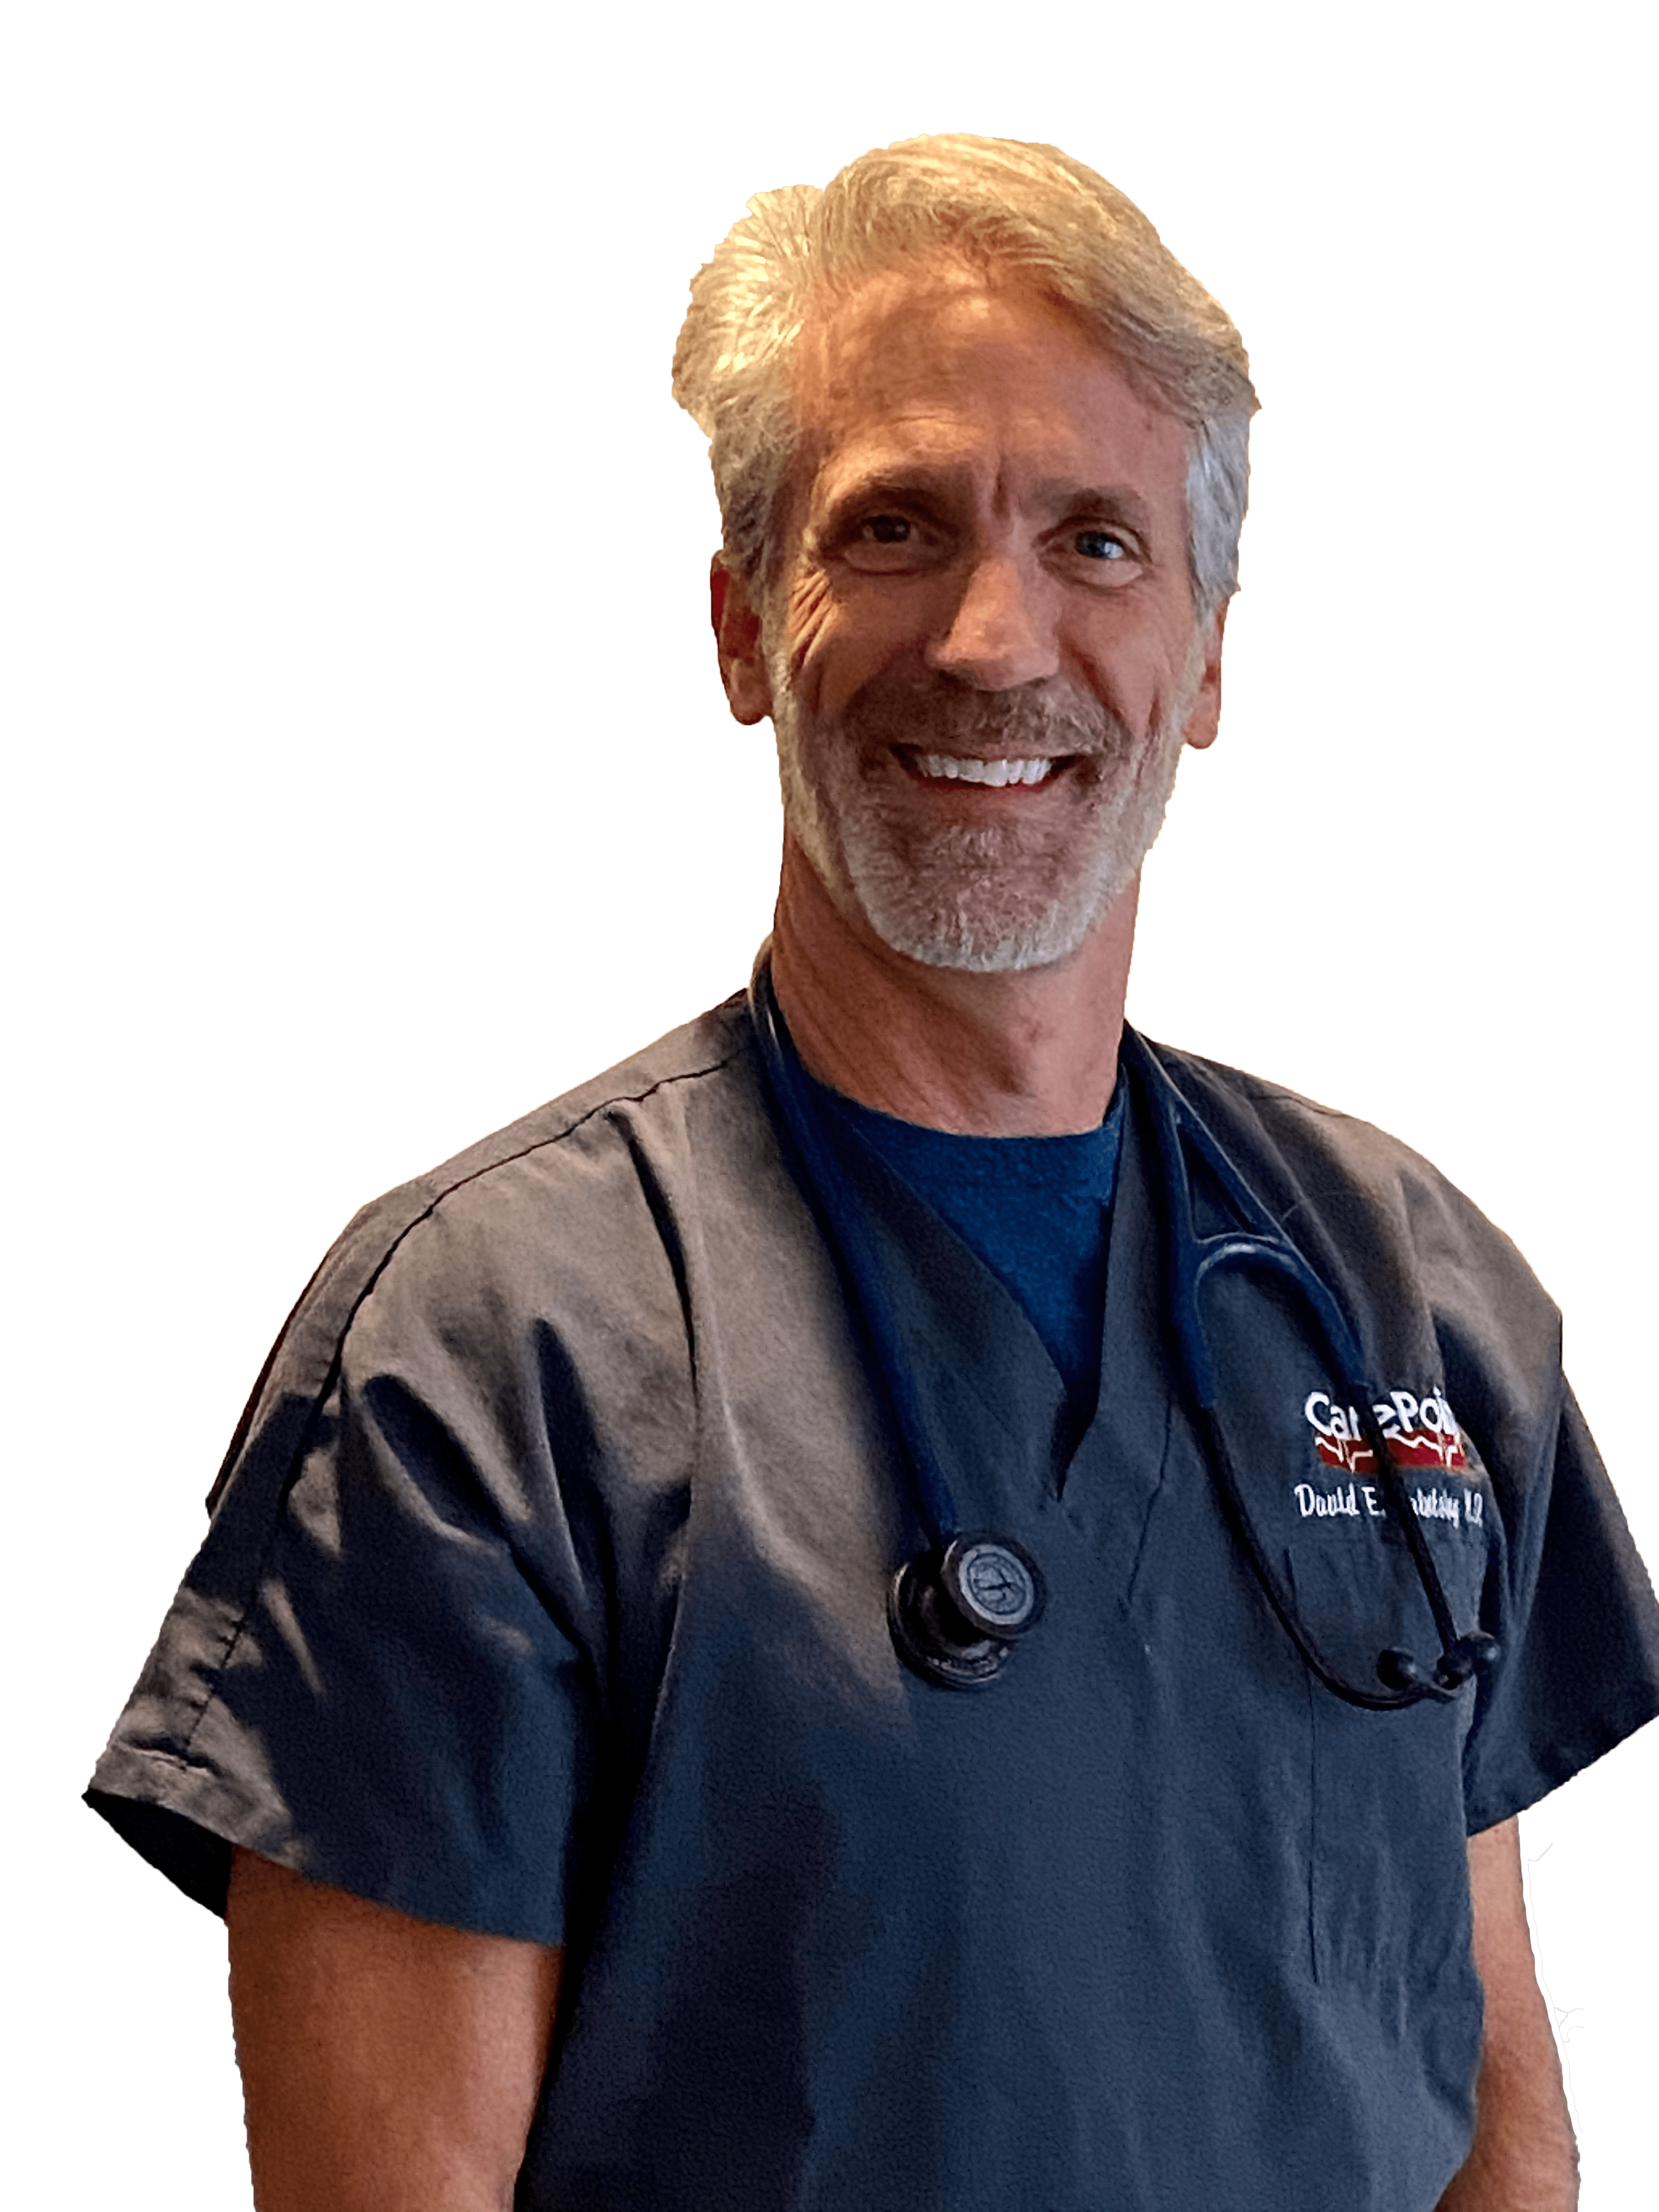 Dr. David Saintsing, M.D. in navy blue scrubs with stethoscope around shoulders and smiling